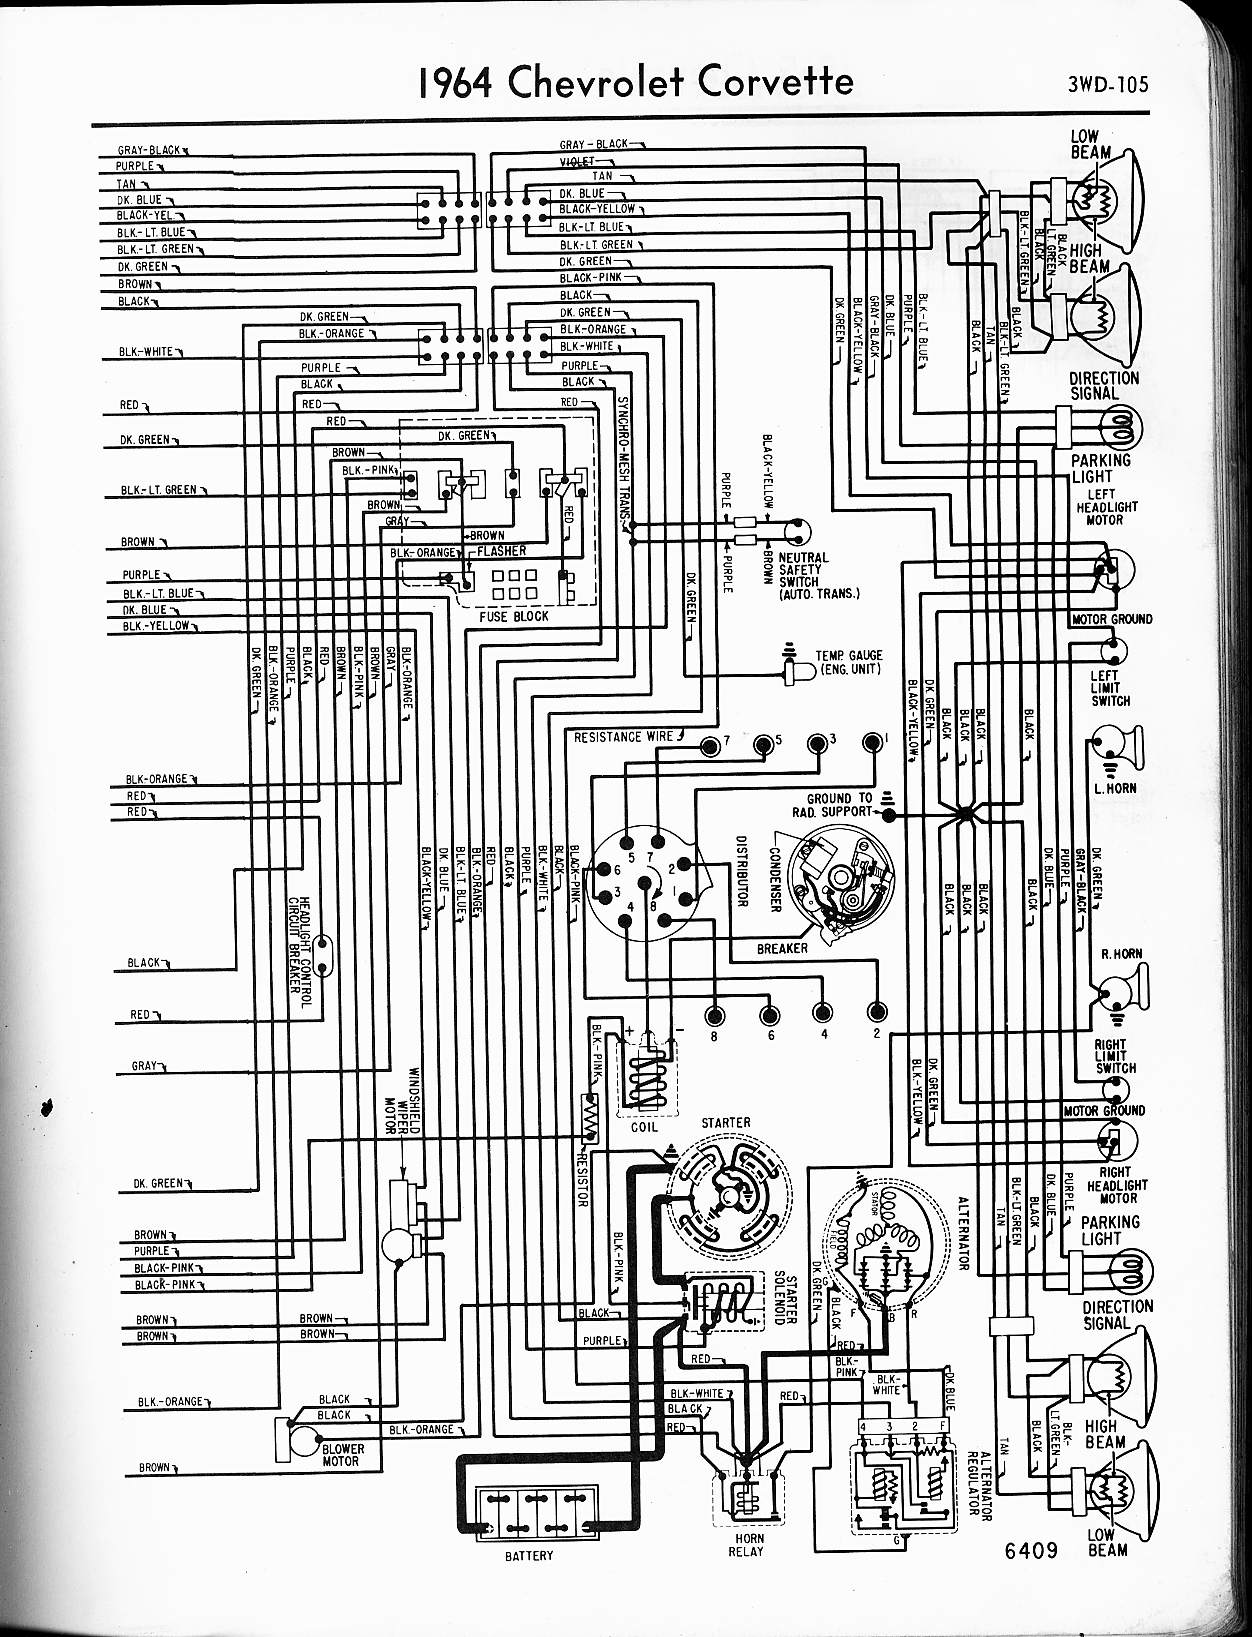 461056080593951672 likewise Cj7 Wiring Harness Diagram as well Watch furthermore Chevroletindex furthermore Buickindex. on 62 chevy headlight switch diagram